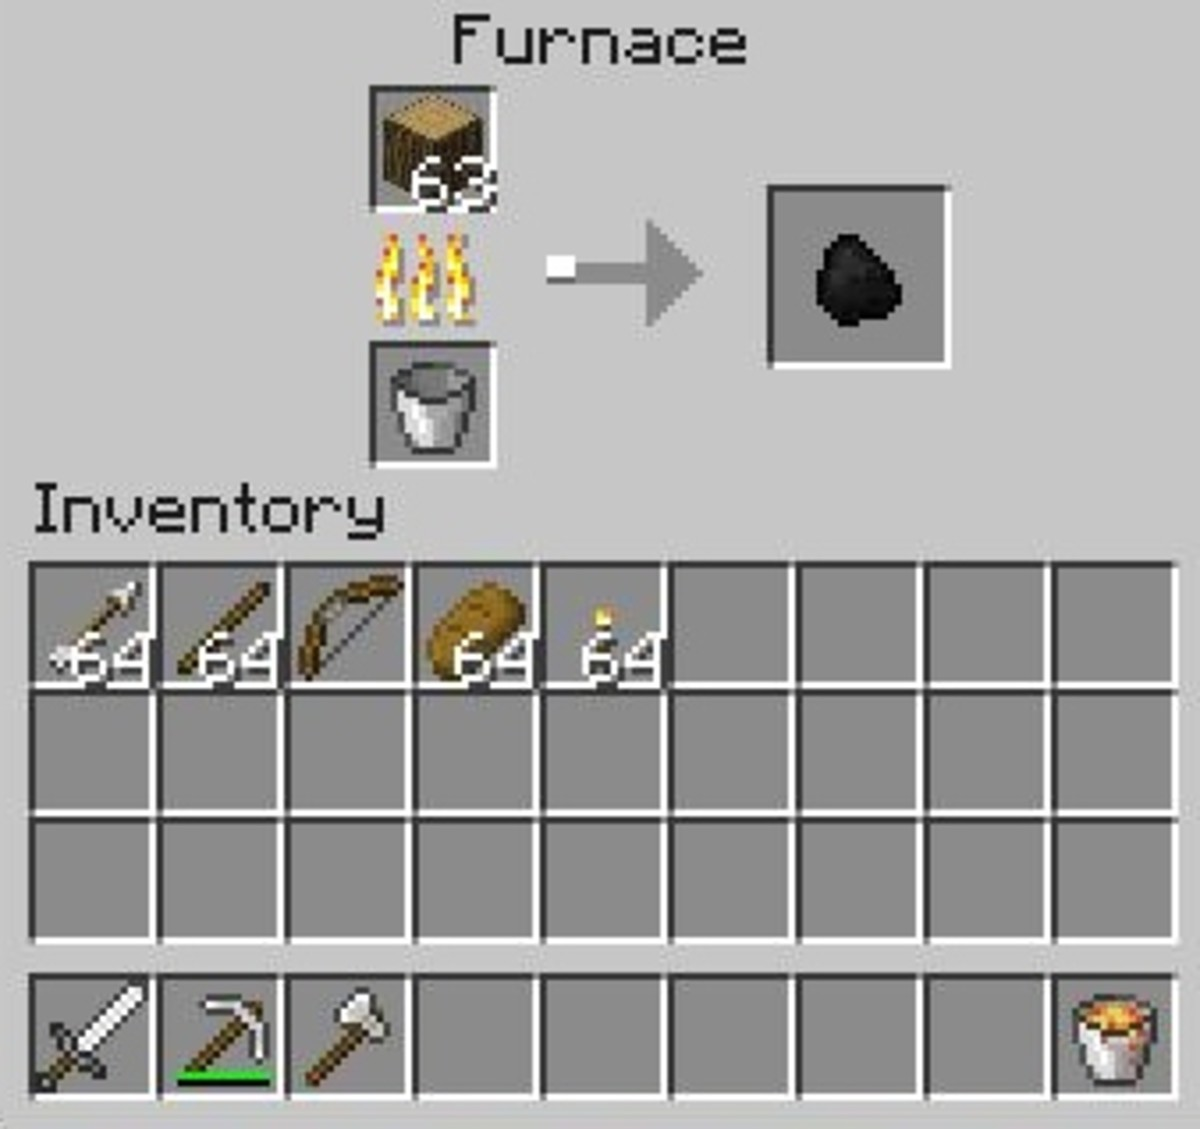 Crafting charcoal requires a furnace, a fuel source and blocks of wood.